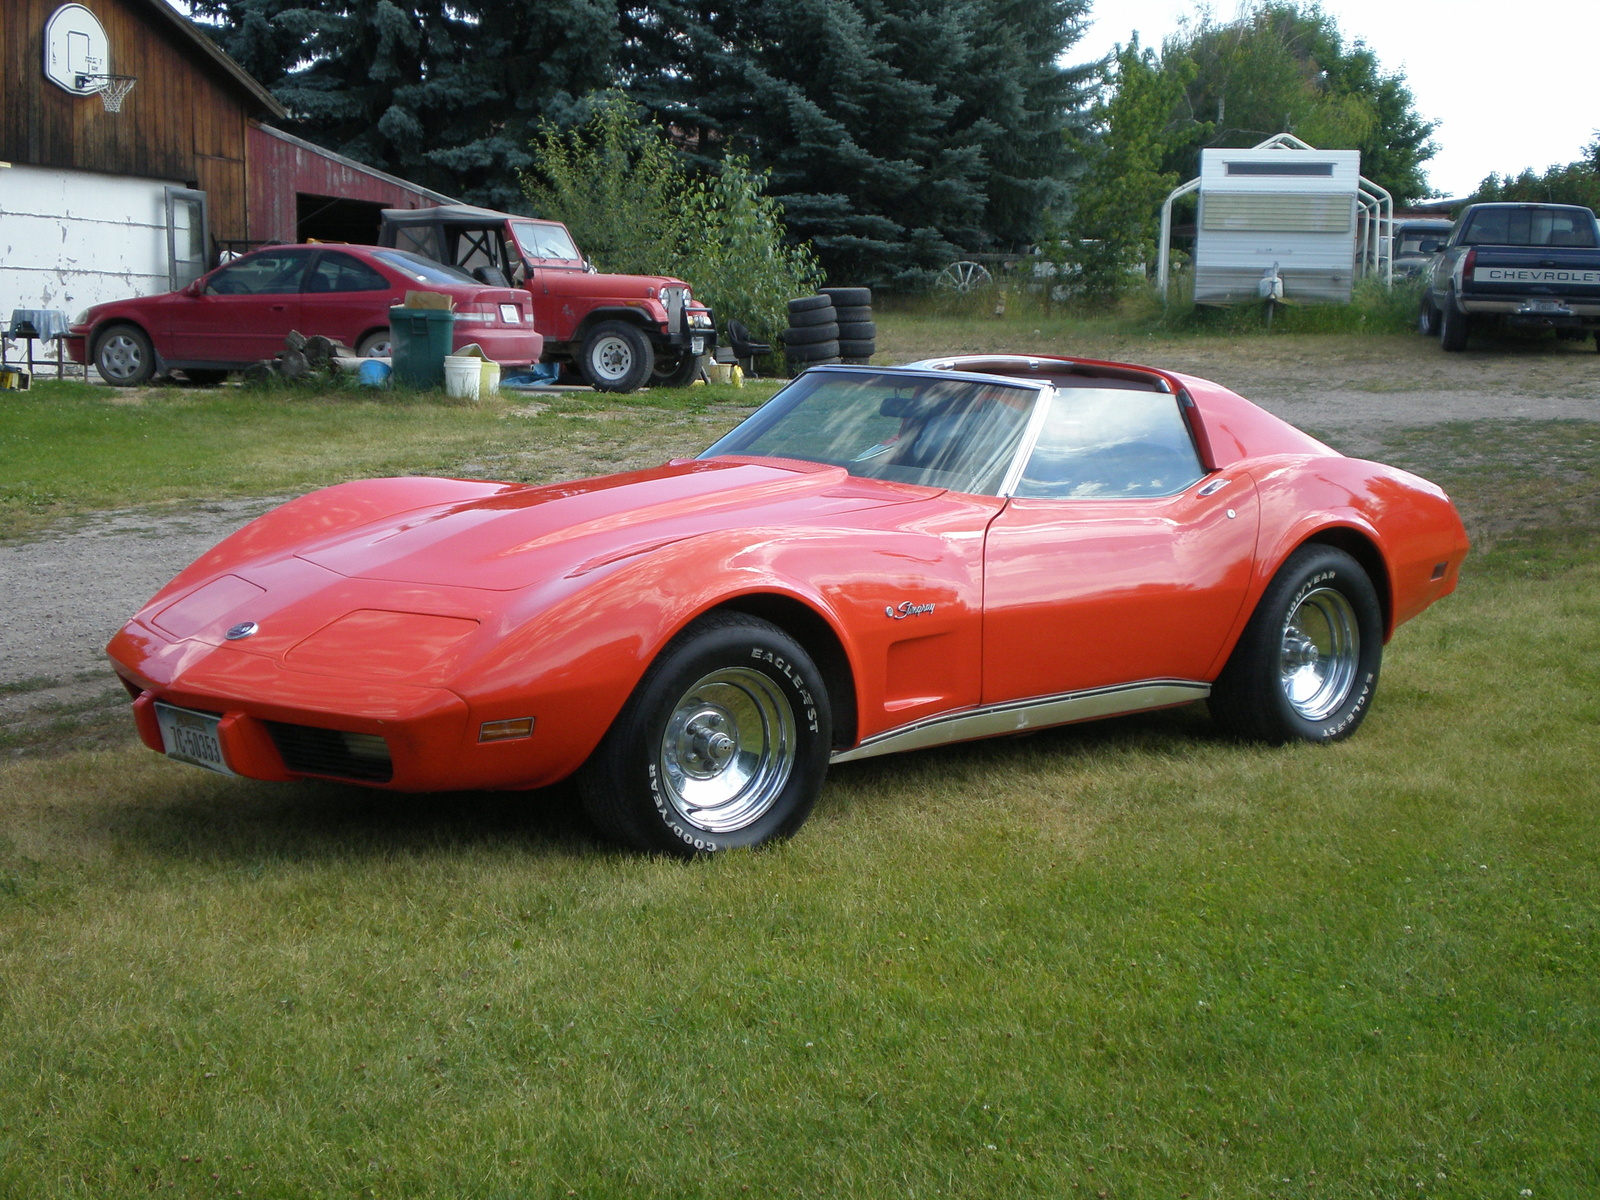 Showthread also 1976 Chevrolet Corvette Pictures C433 pi10673099 also Camaro Wheels 2002 Blazer 4x4 92328 in addition CCL9396 as well 1503036s. on 1998 chevy camaro